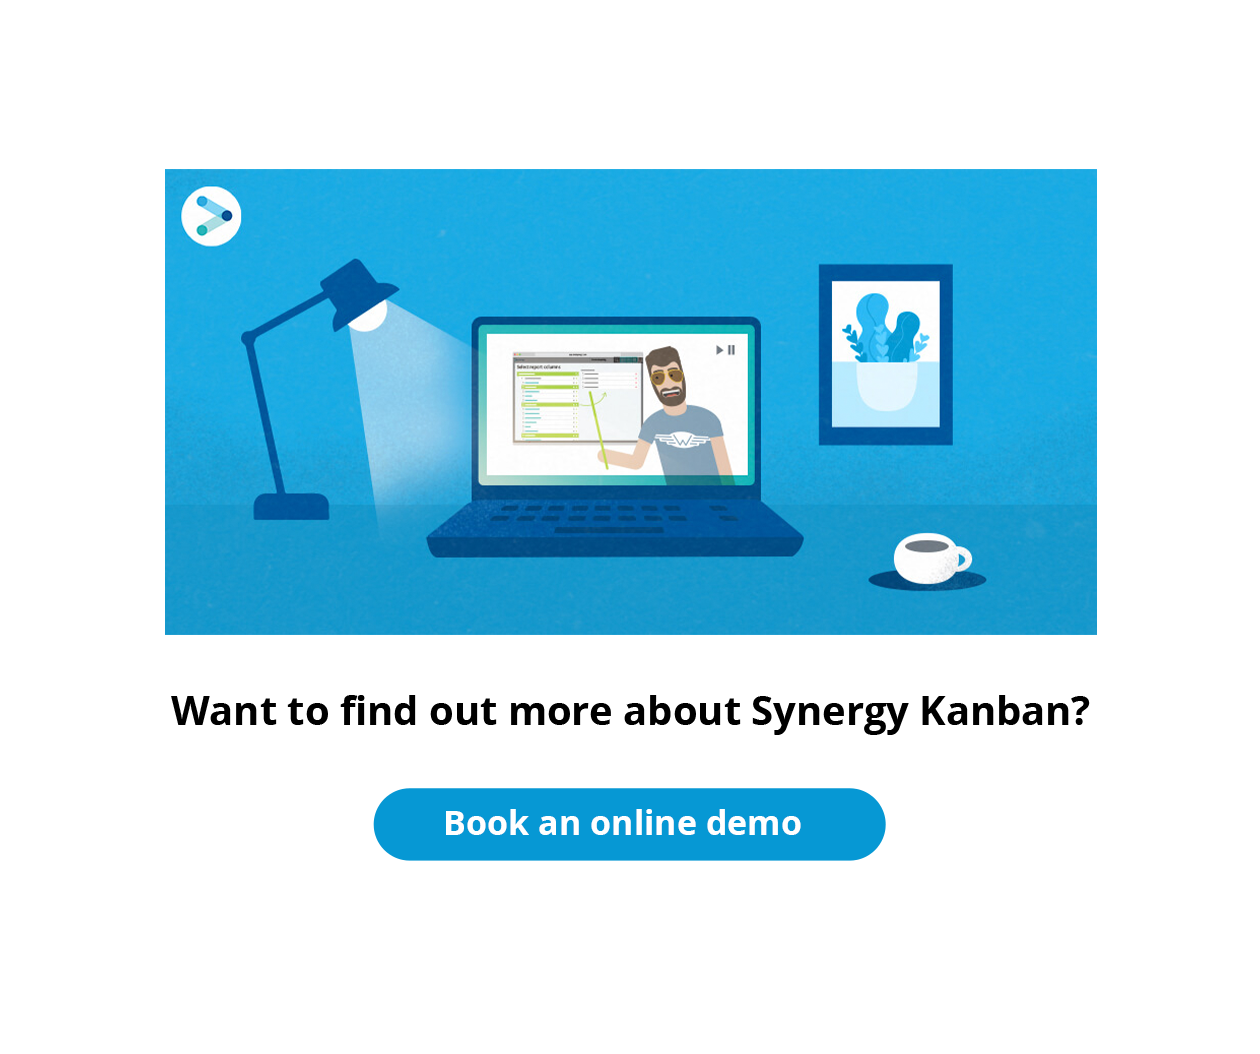 Book an online demo